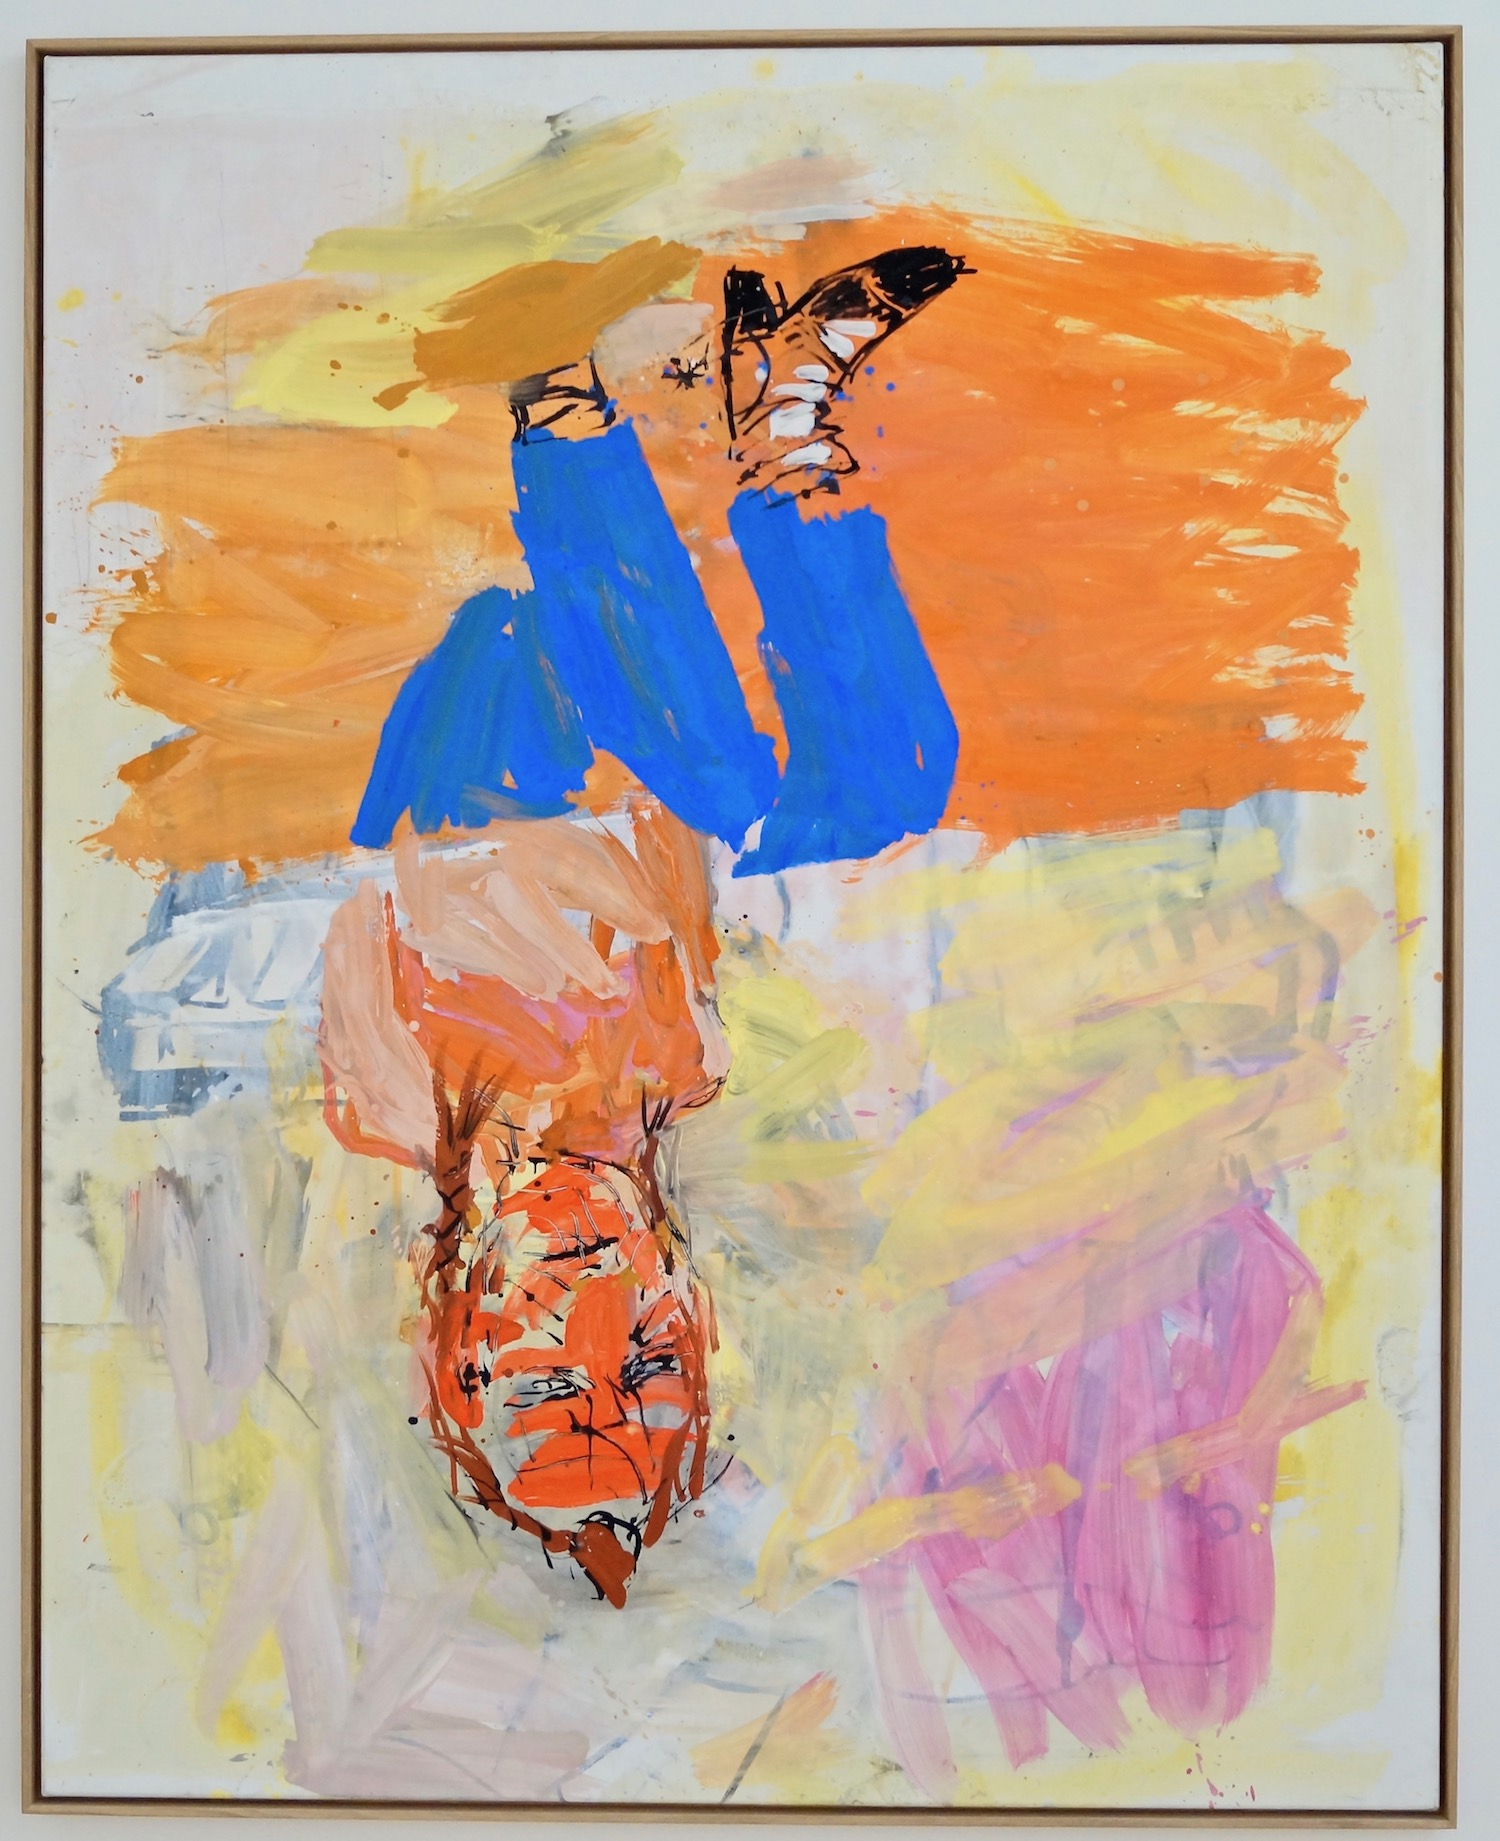 Georg Baselitz Victory Day, 31.VII.03 oil on canvas 208 x 166 cm | 82 x 65 1/3 in GB/M 2   inquire